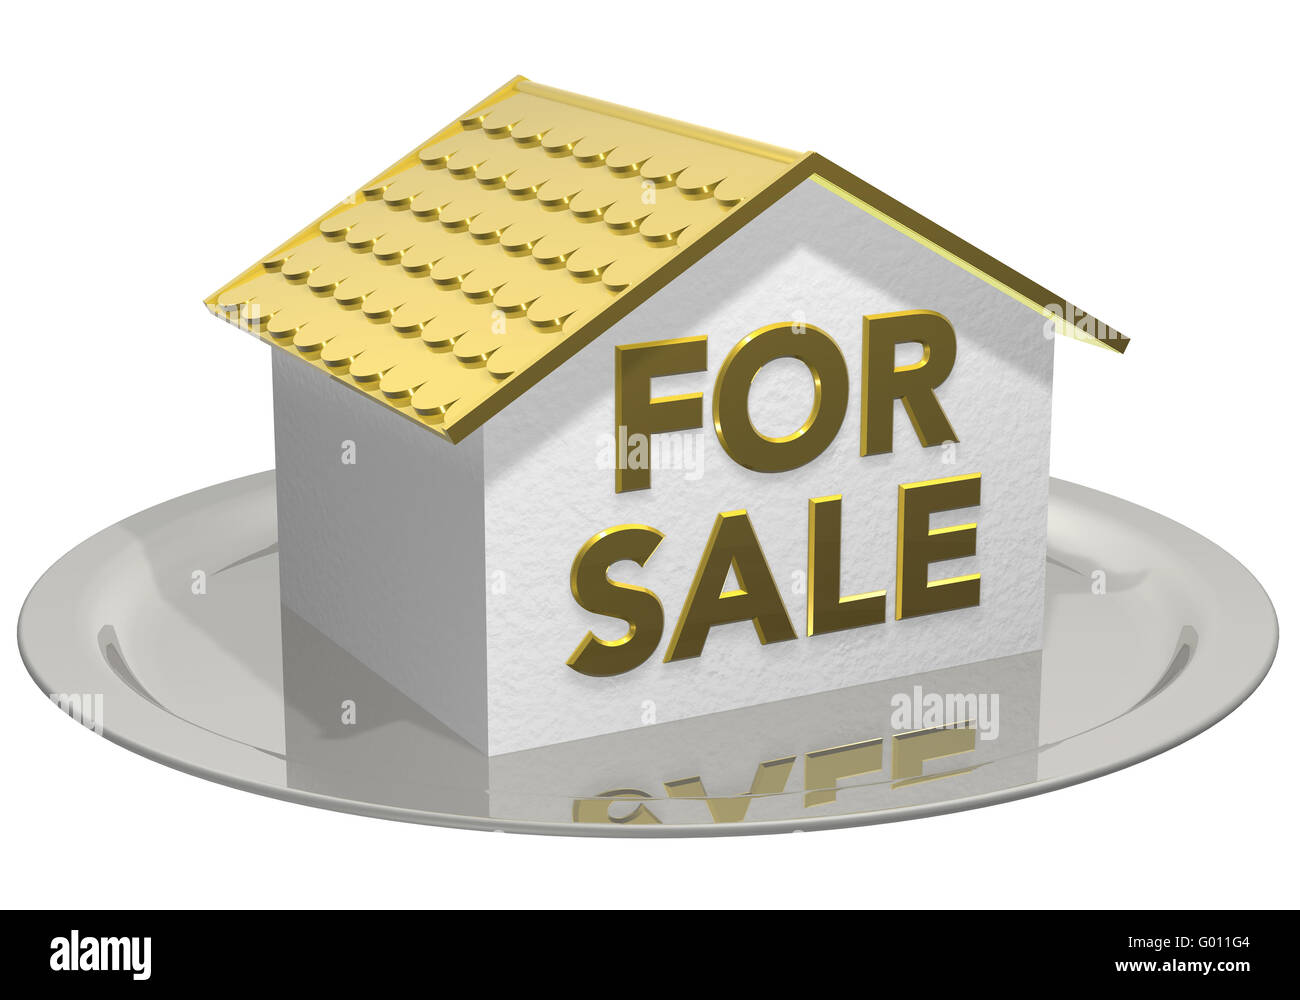 house for sale gold - Stock Image